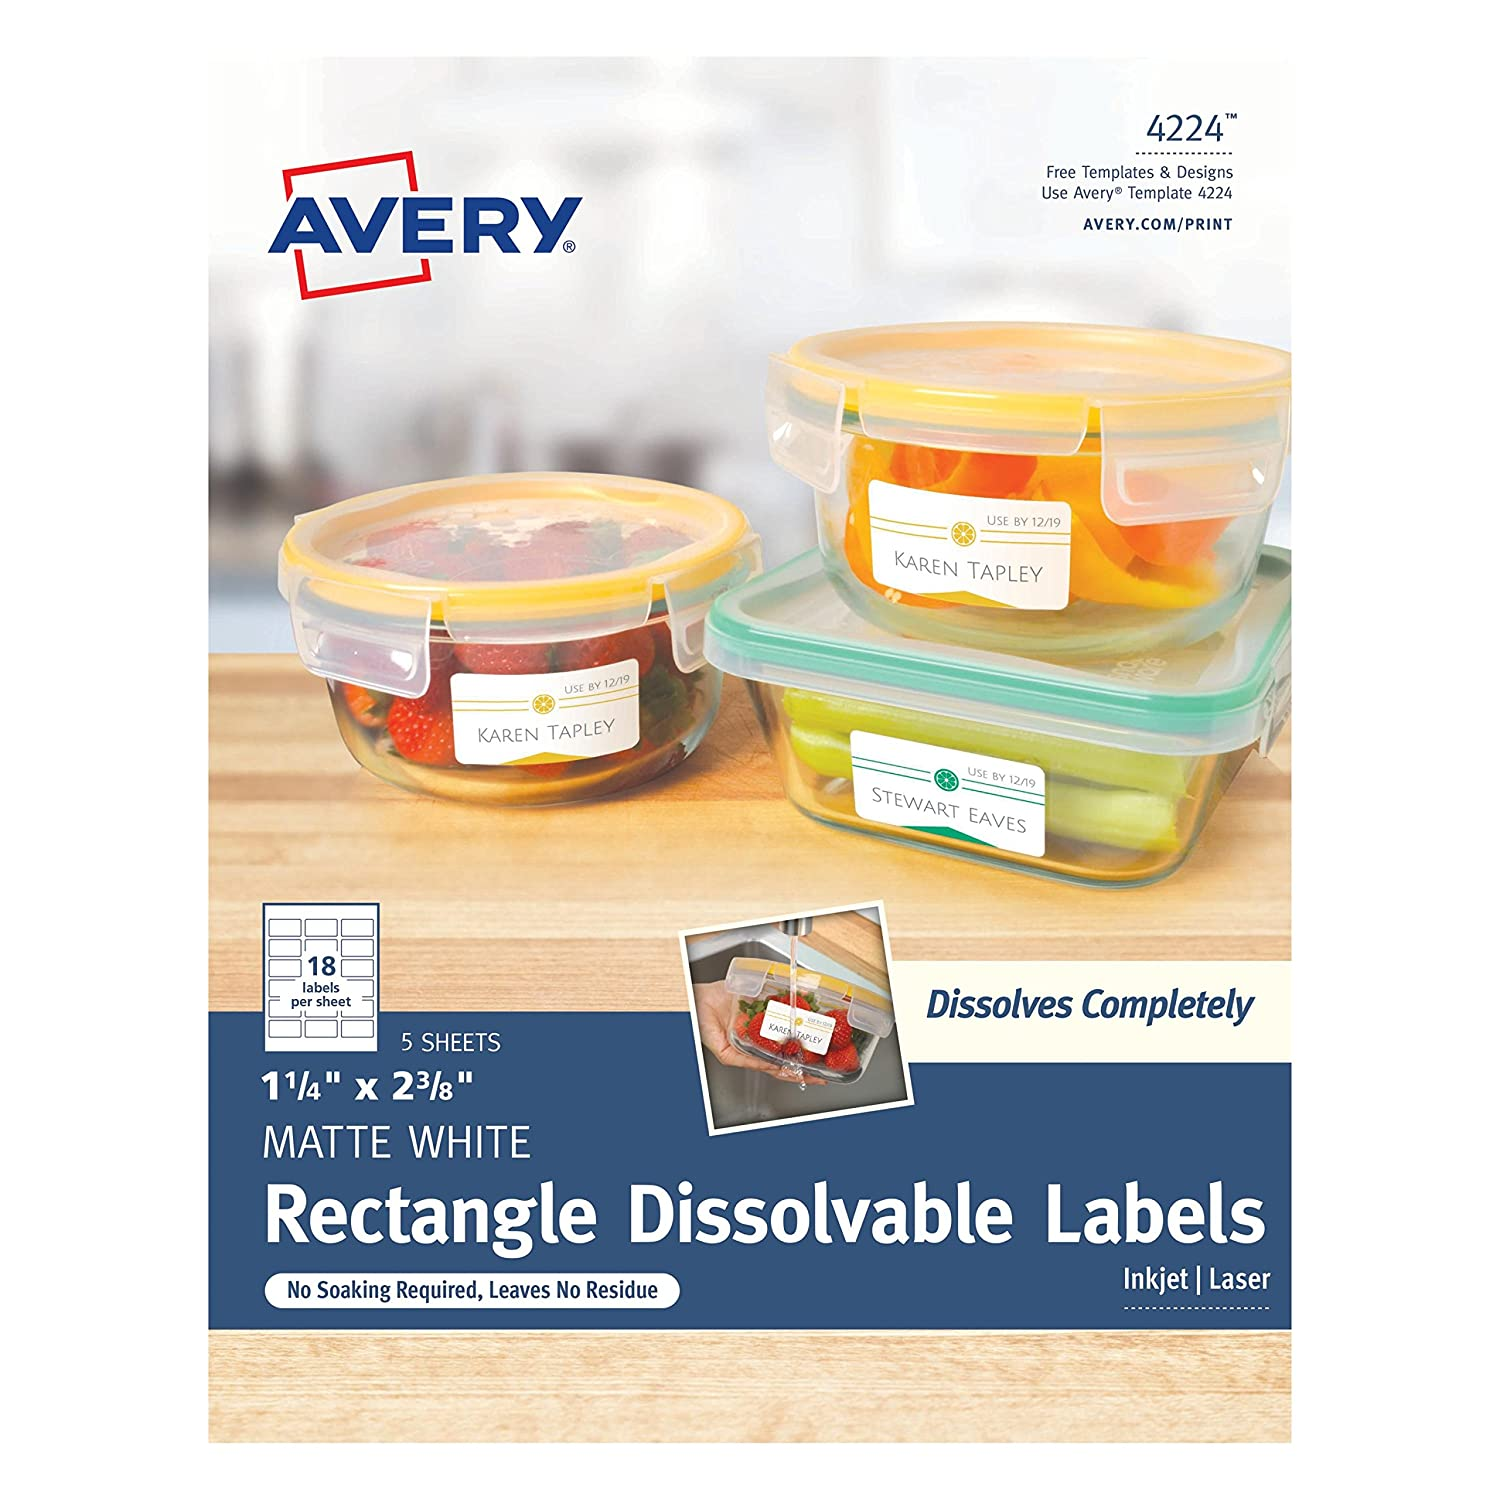 "Avery Dissolvable Rectangle Labels, 1-1/4"" x 2-3/8"", Pack of 90 (4224)"